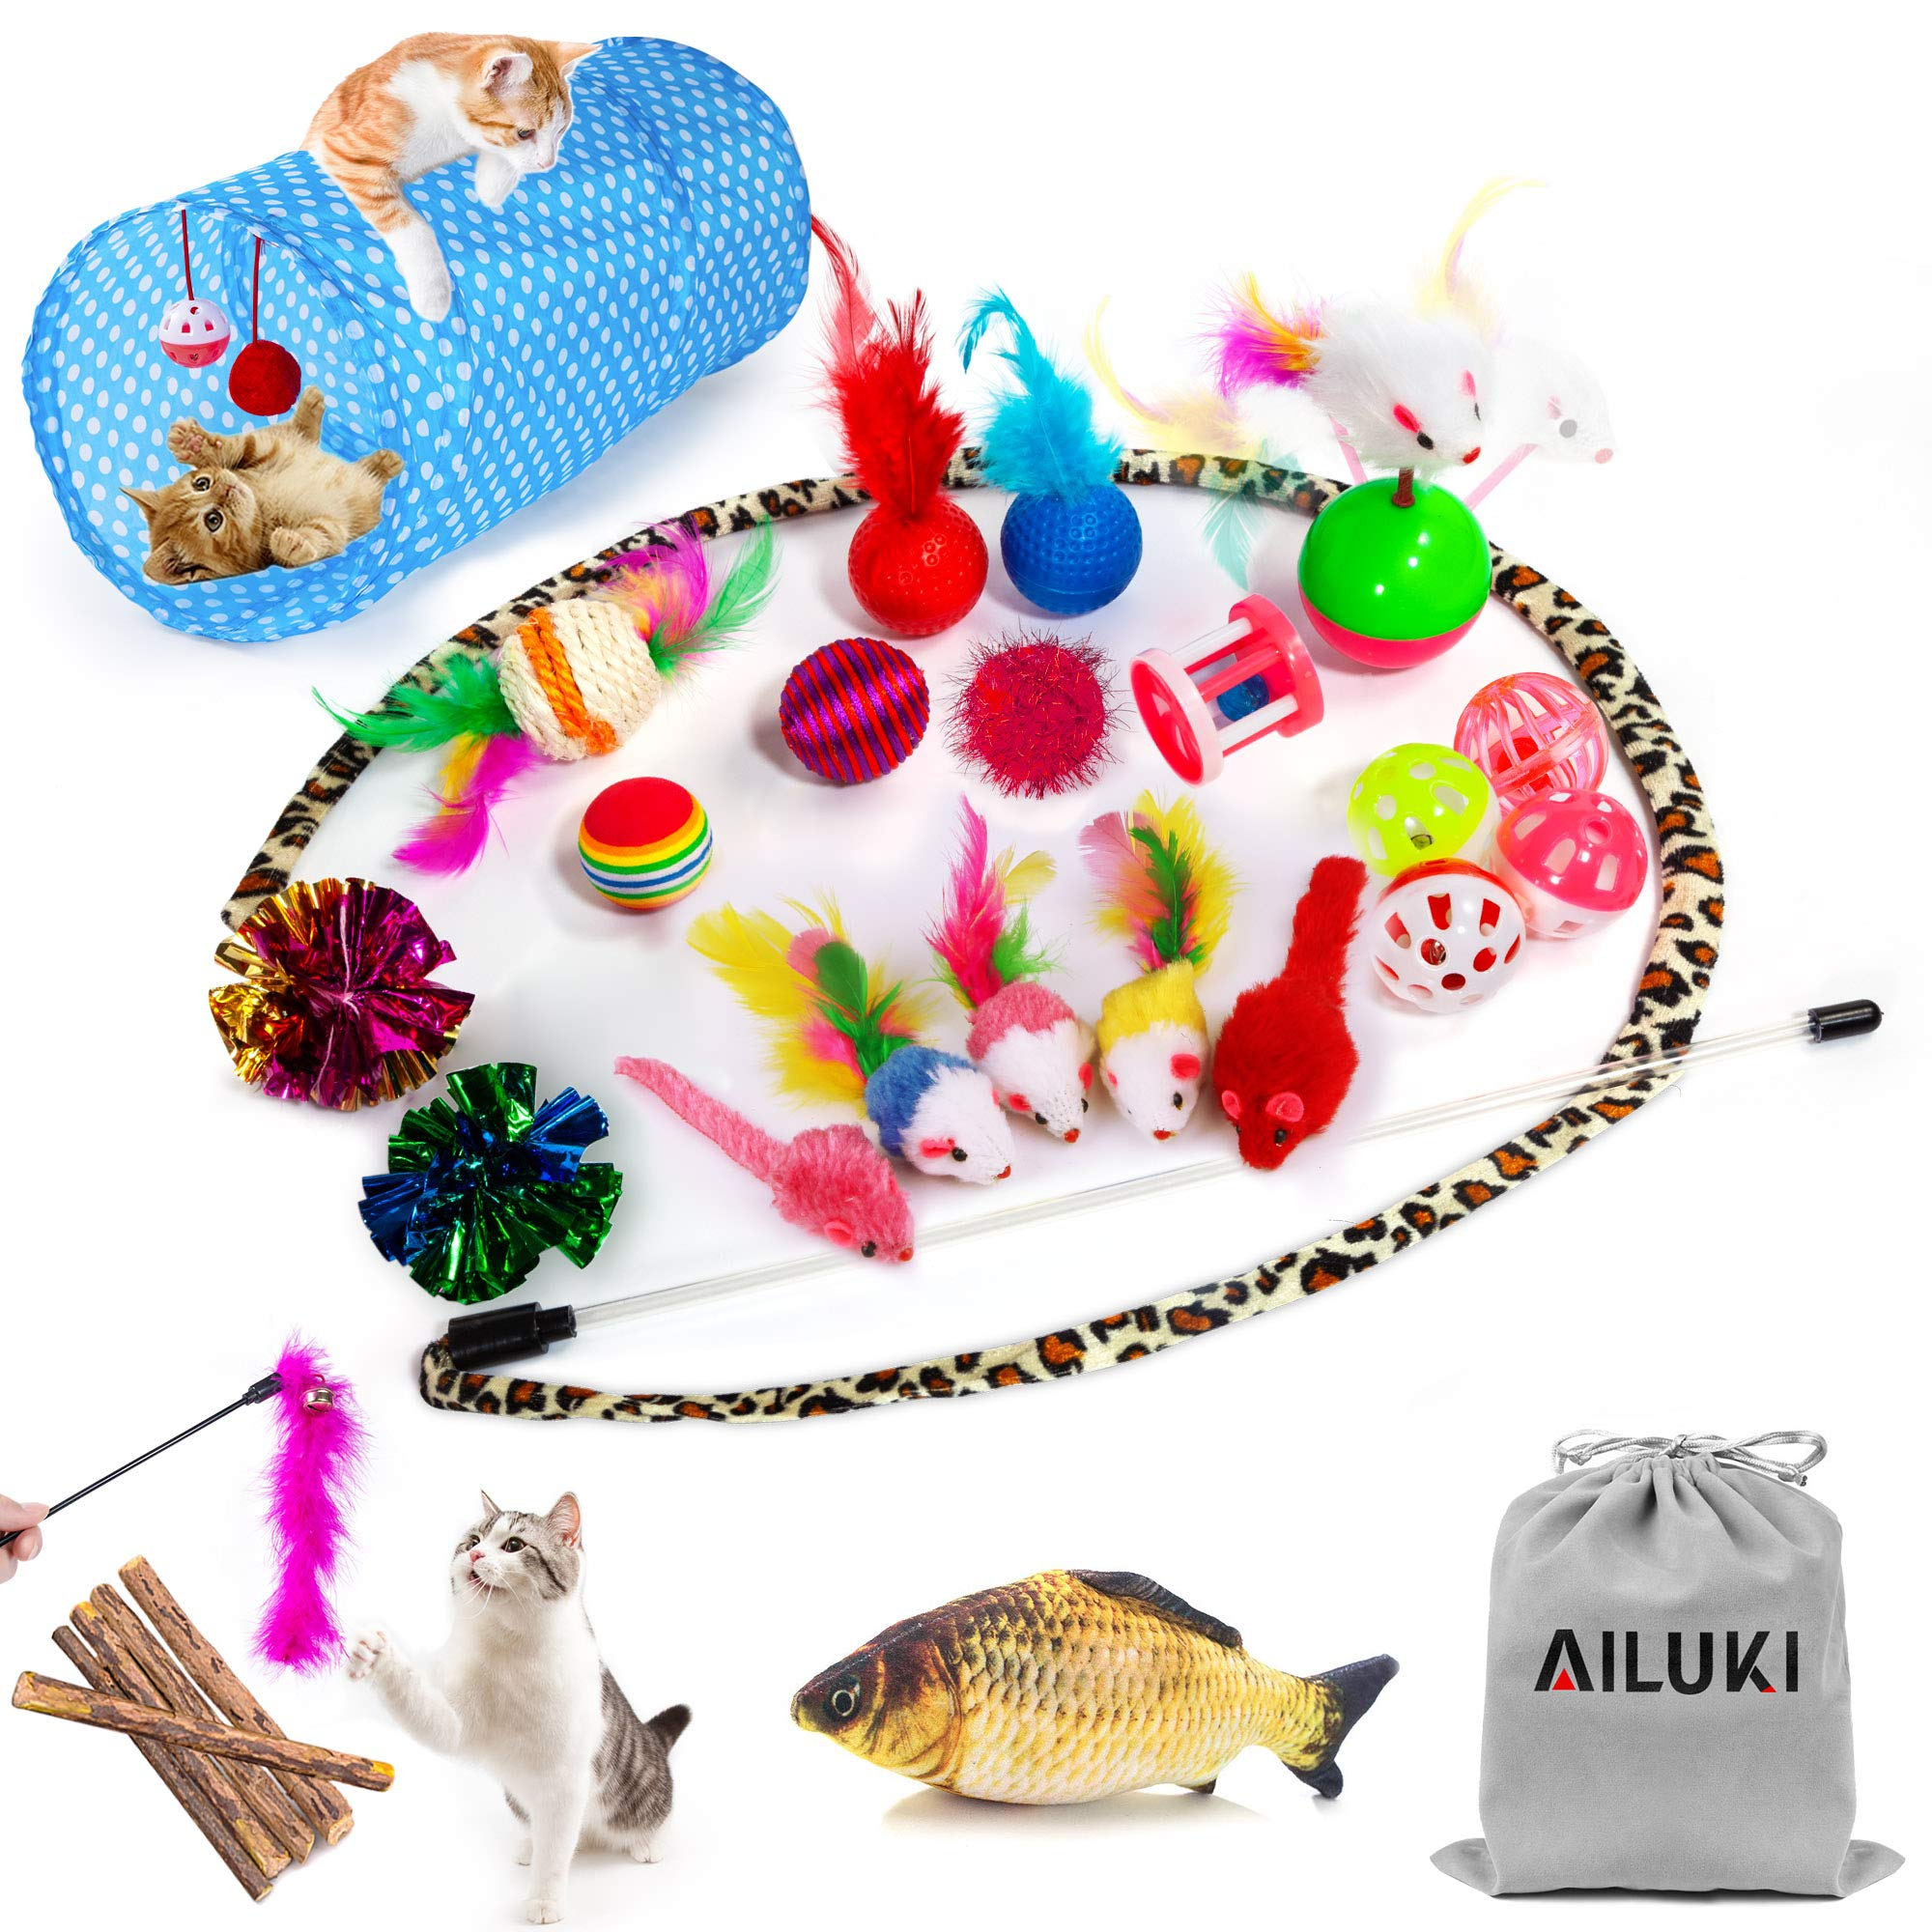 AILUKI Assortments Variety Including Colorful